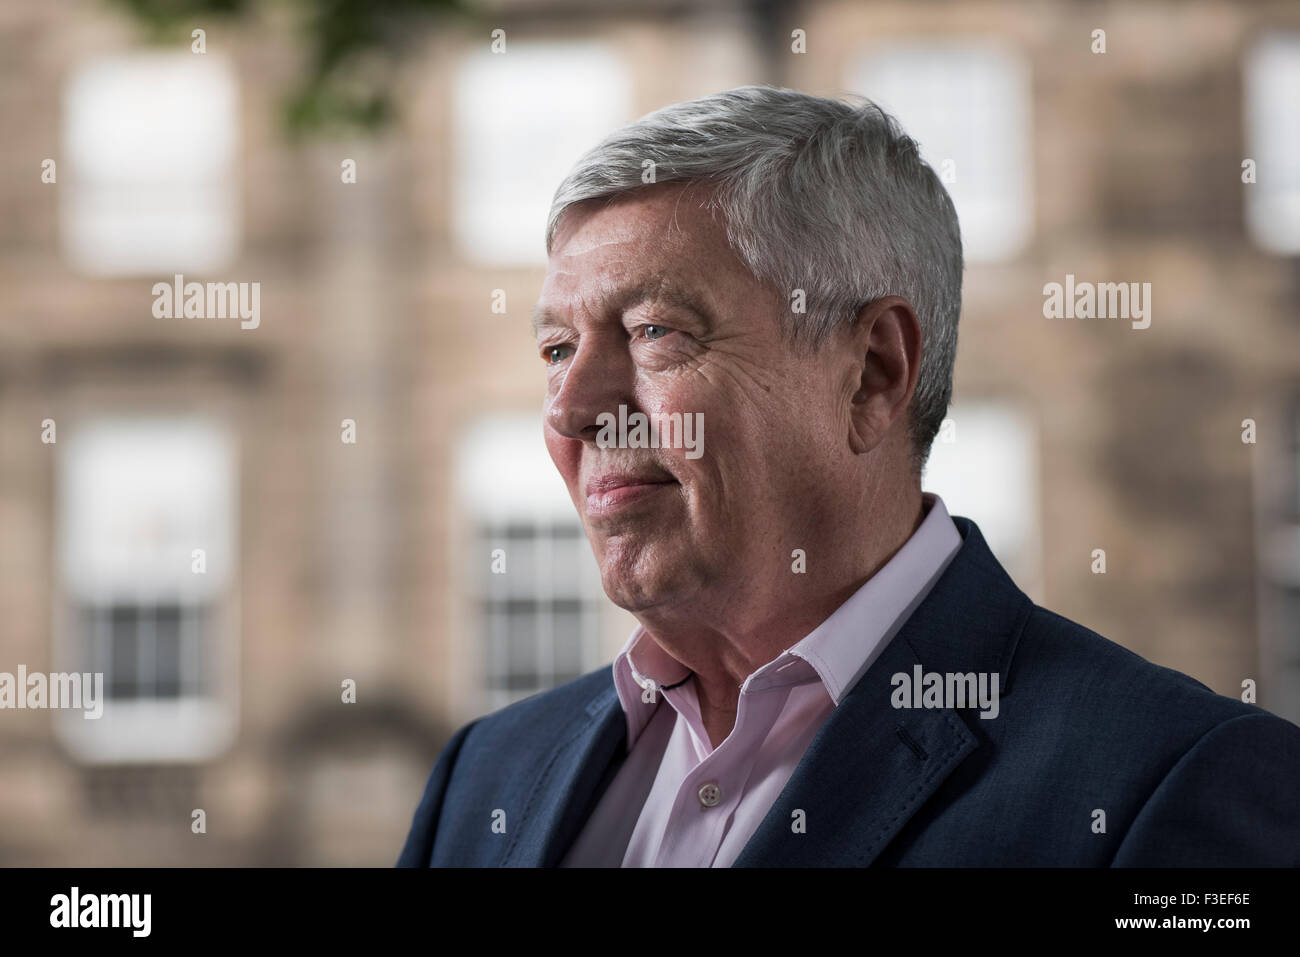 British Labour Party politician Alan Johnson. - Stock Image